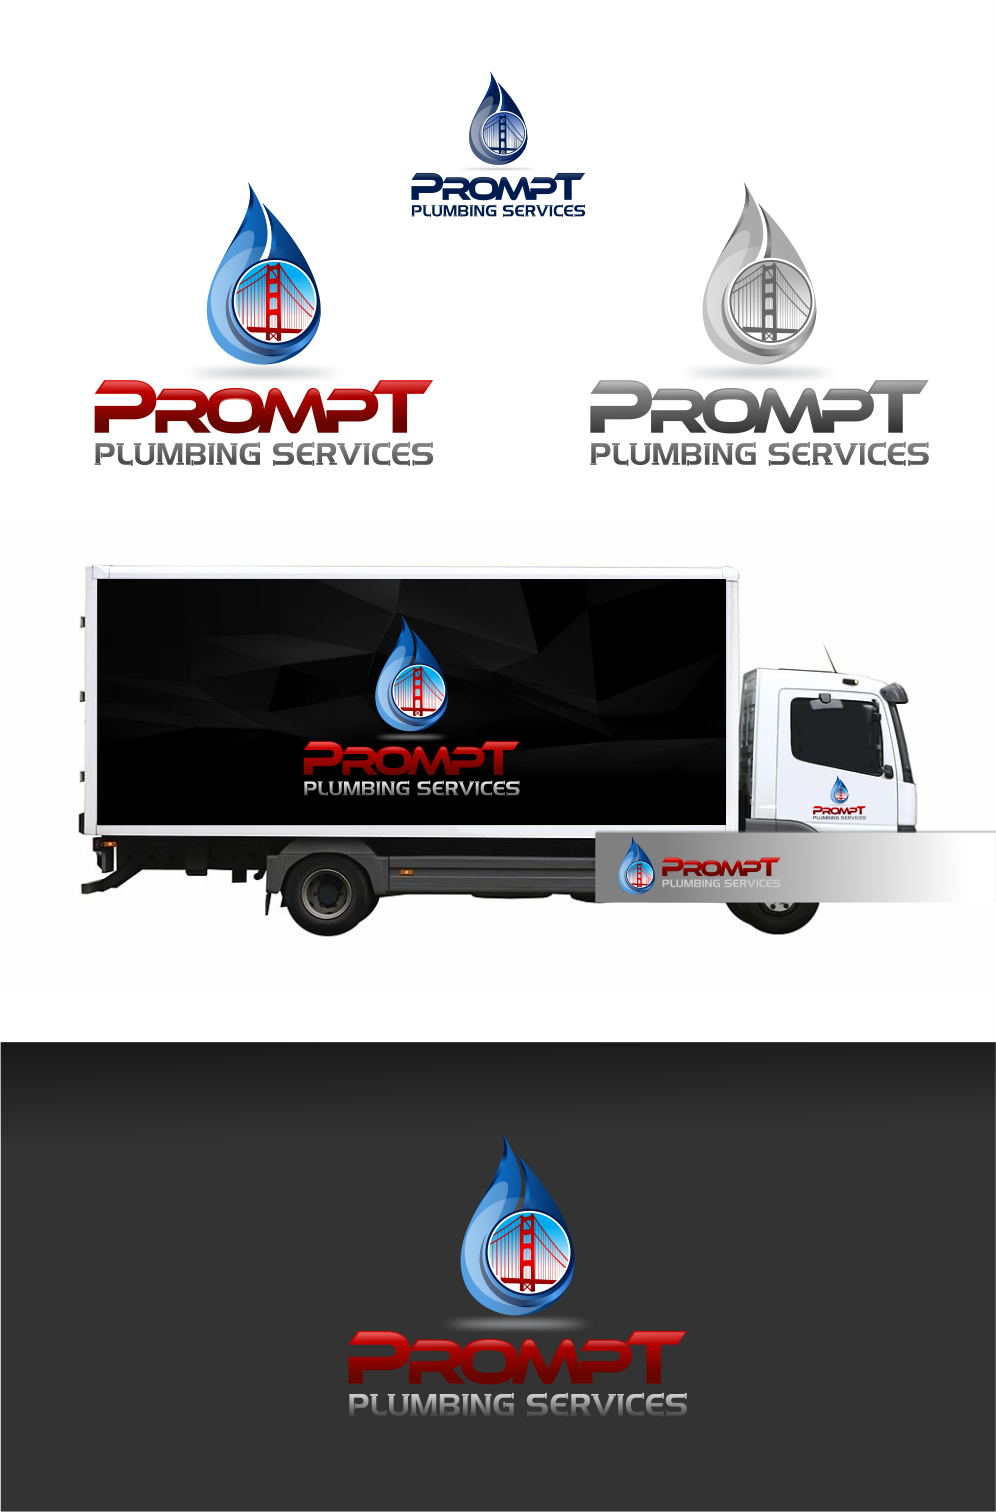 Logo Design by Raymond Garcia - Entry No. 64 in the Logo Design Contest Artistic Logo Design for Prompt Plumbing Services.